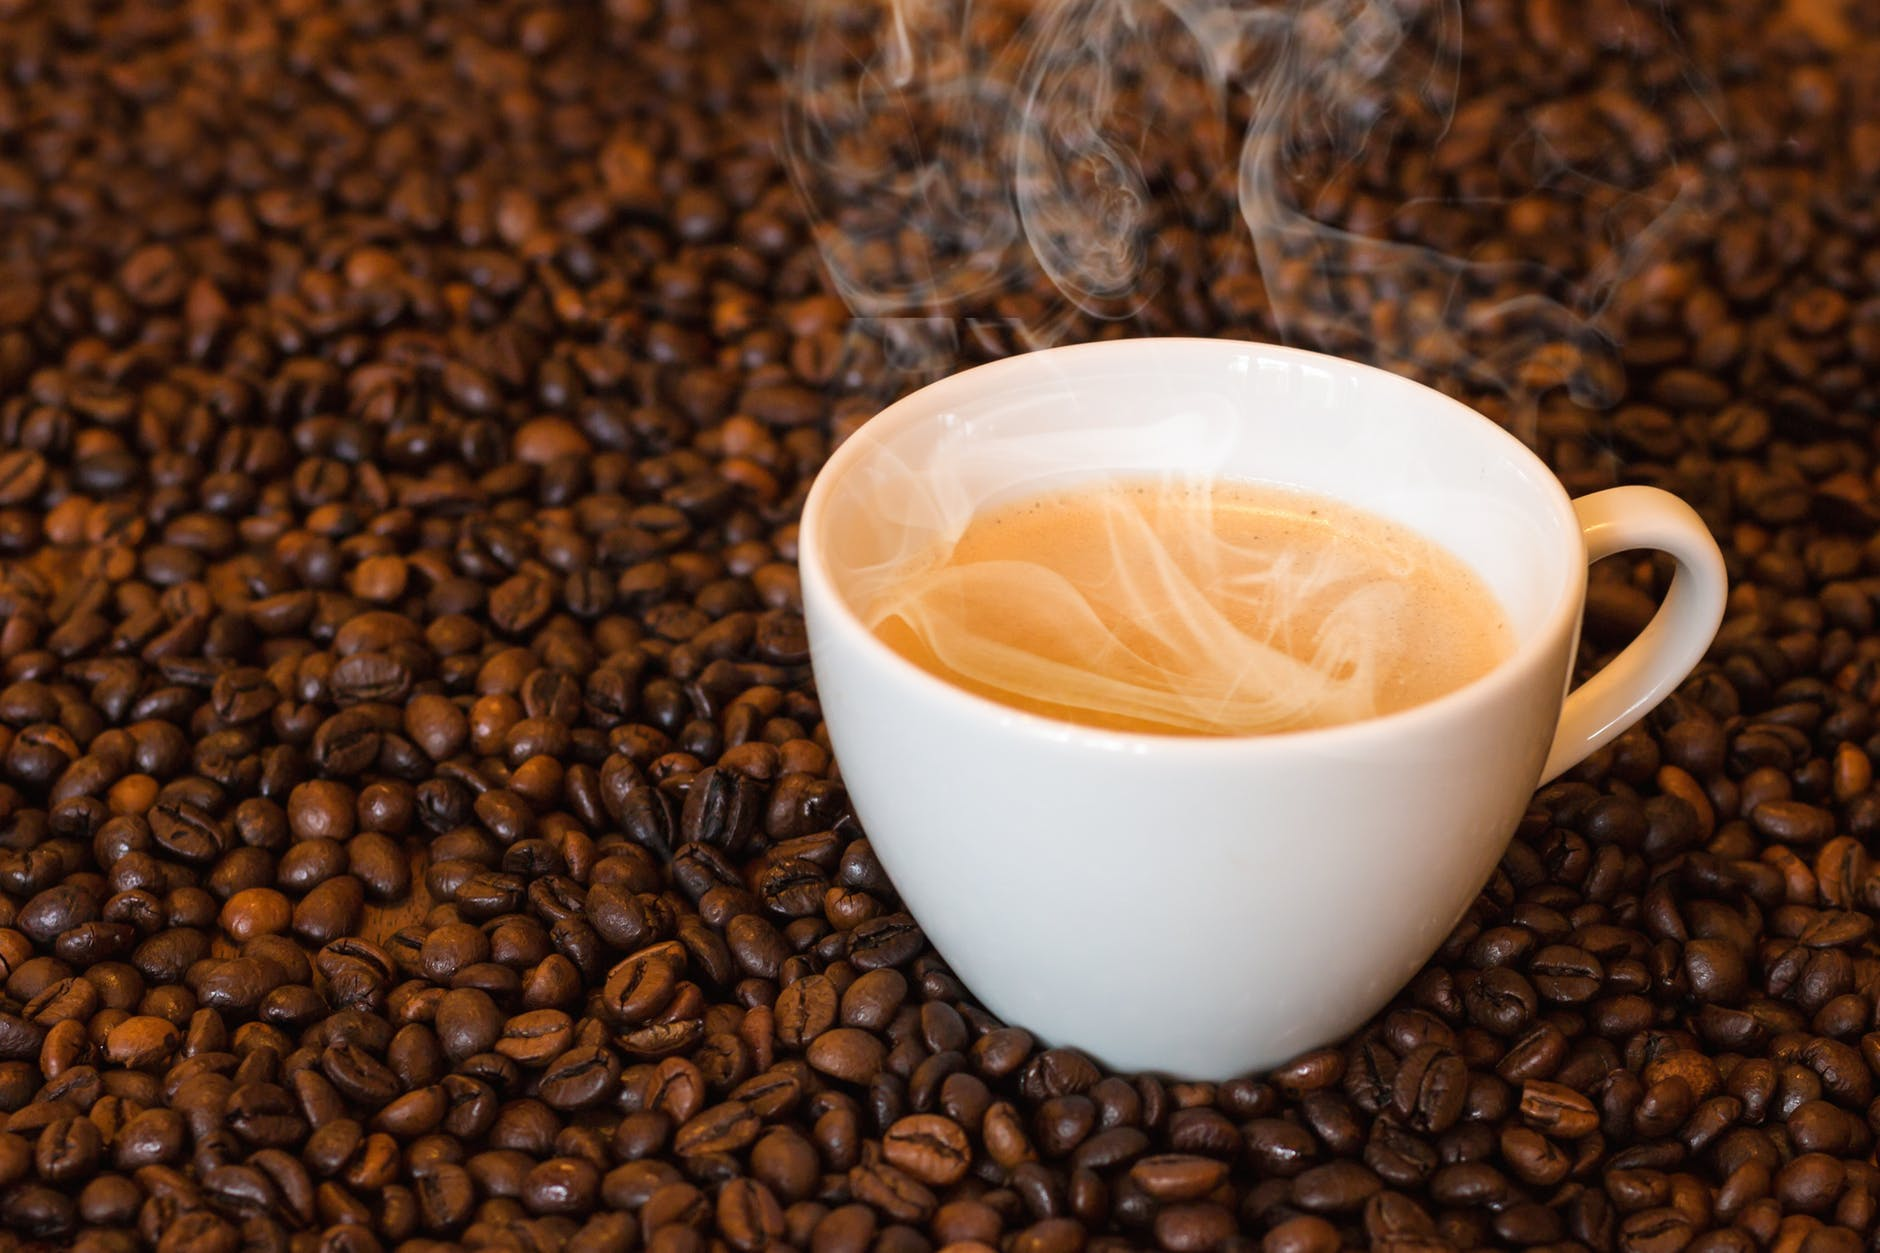 Coffee Beans Market Industry Analysis and Forecast to 2027 - Caribou Coffee Company, Coffee Bean International, Death Wish Coffee Co.